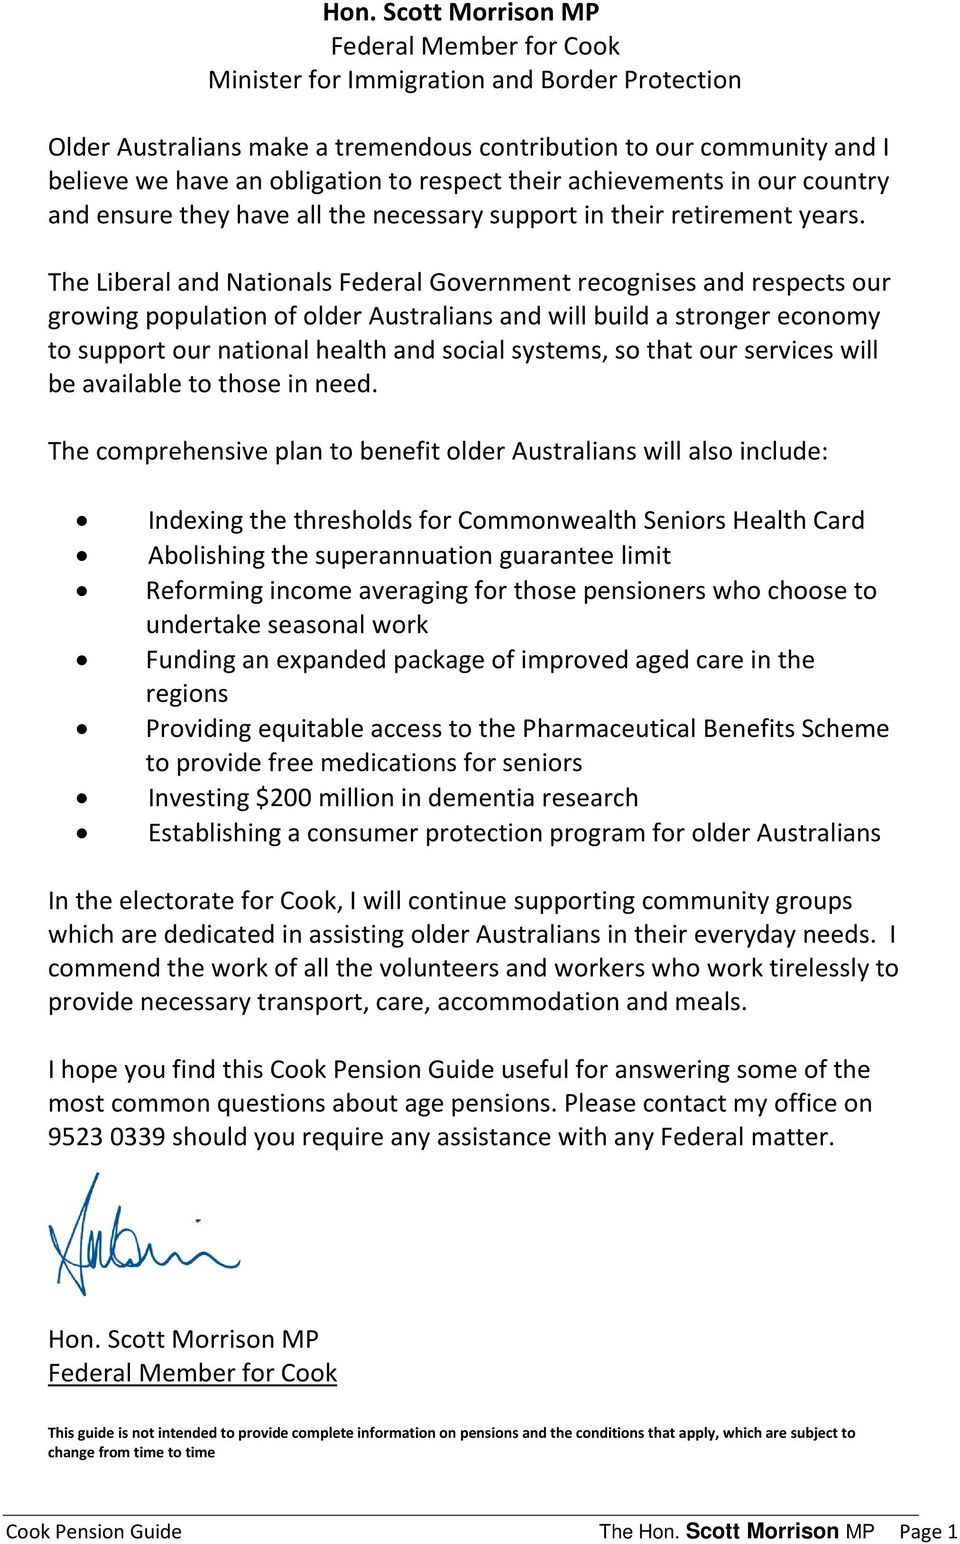 The Liberal and Nationals Federal Government recognises and respects our growing population of older Australians and will build a stronger economy to support our national health and social systems,